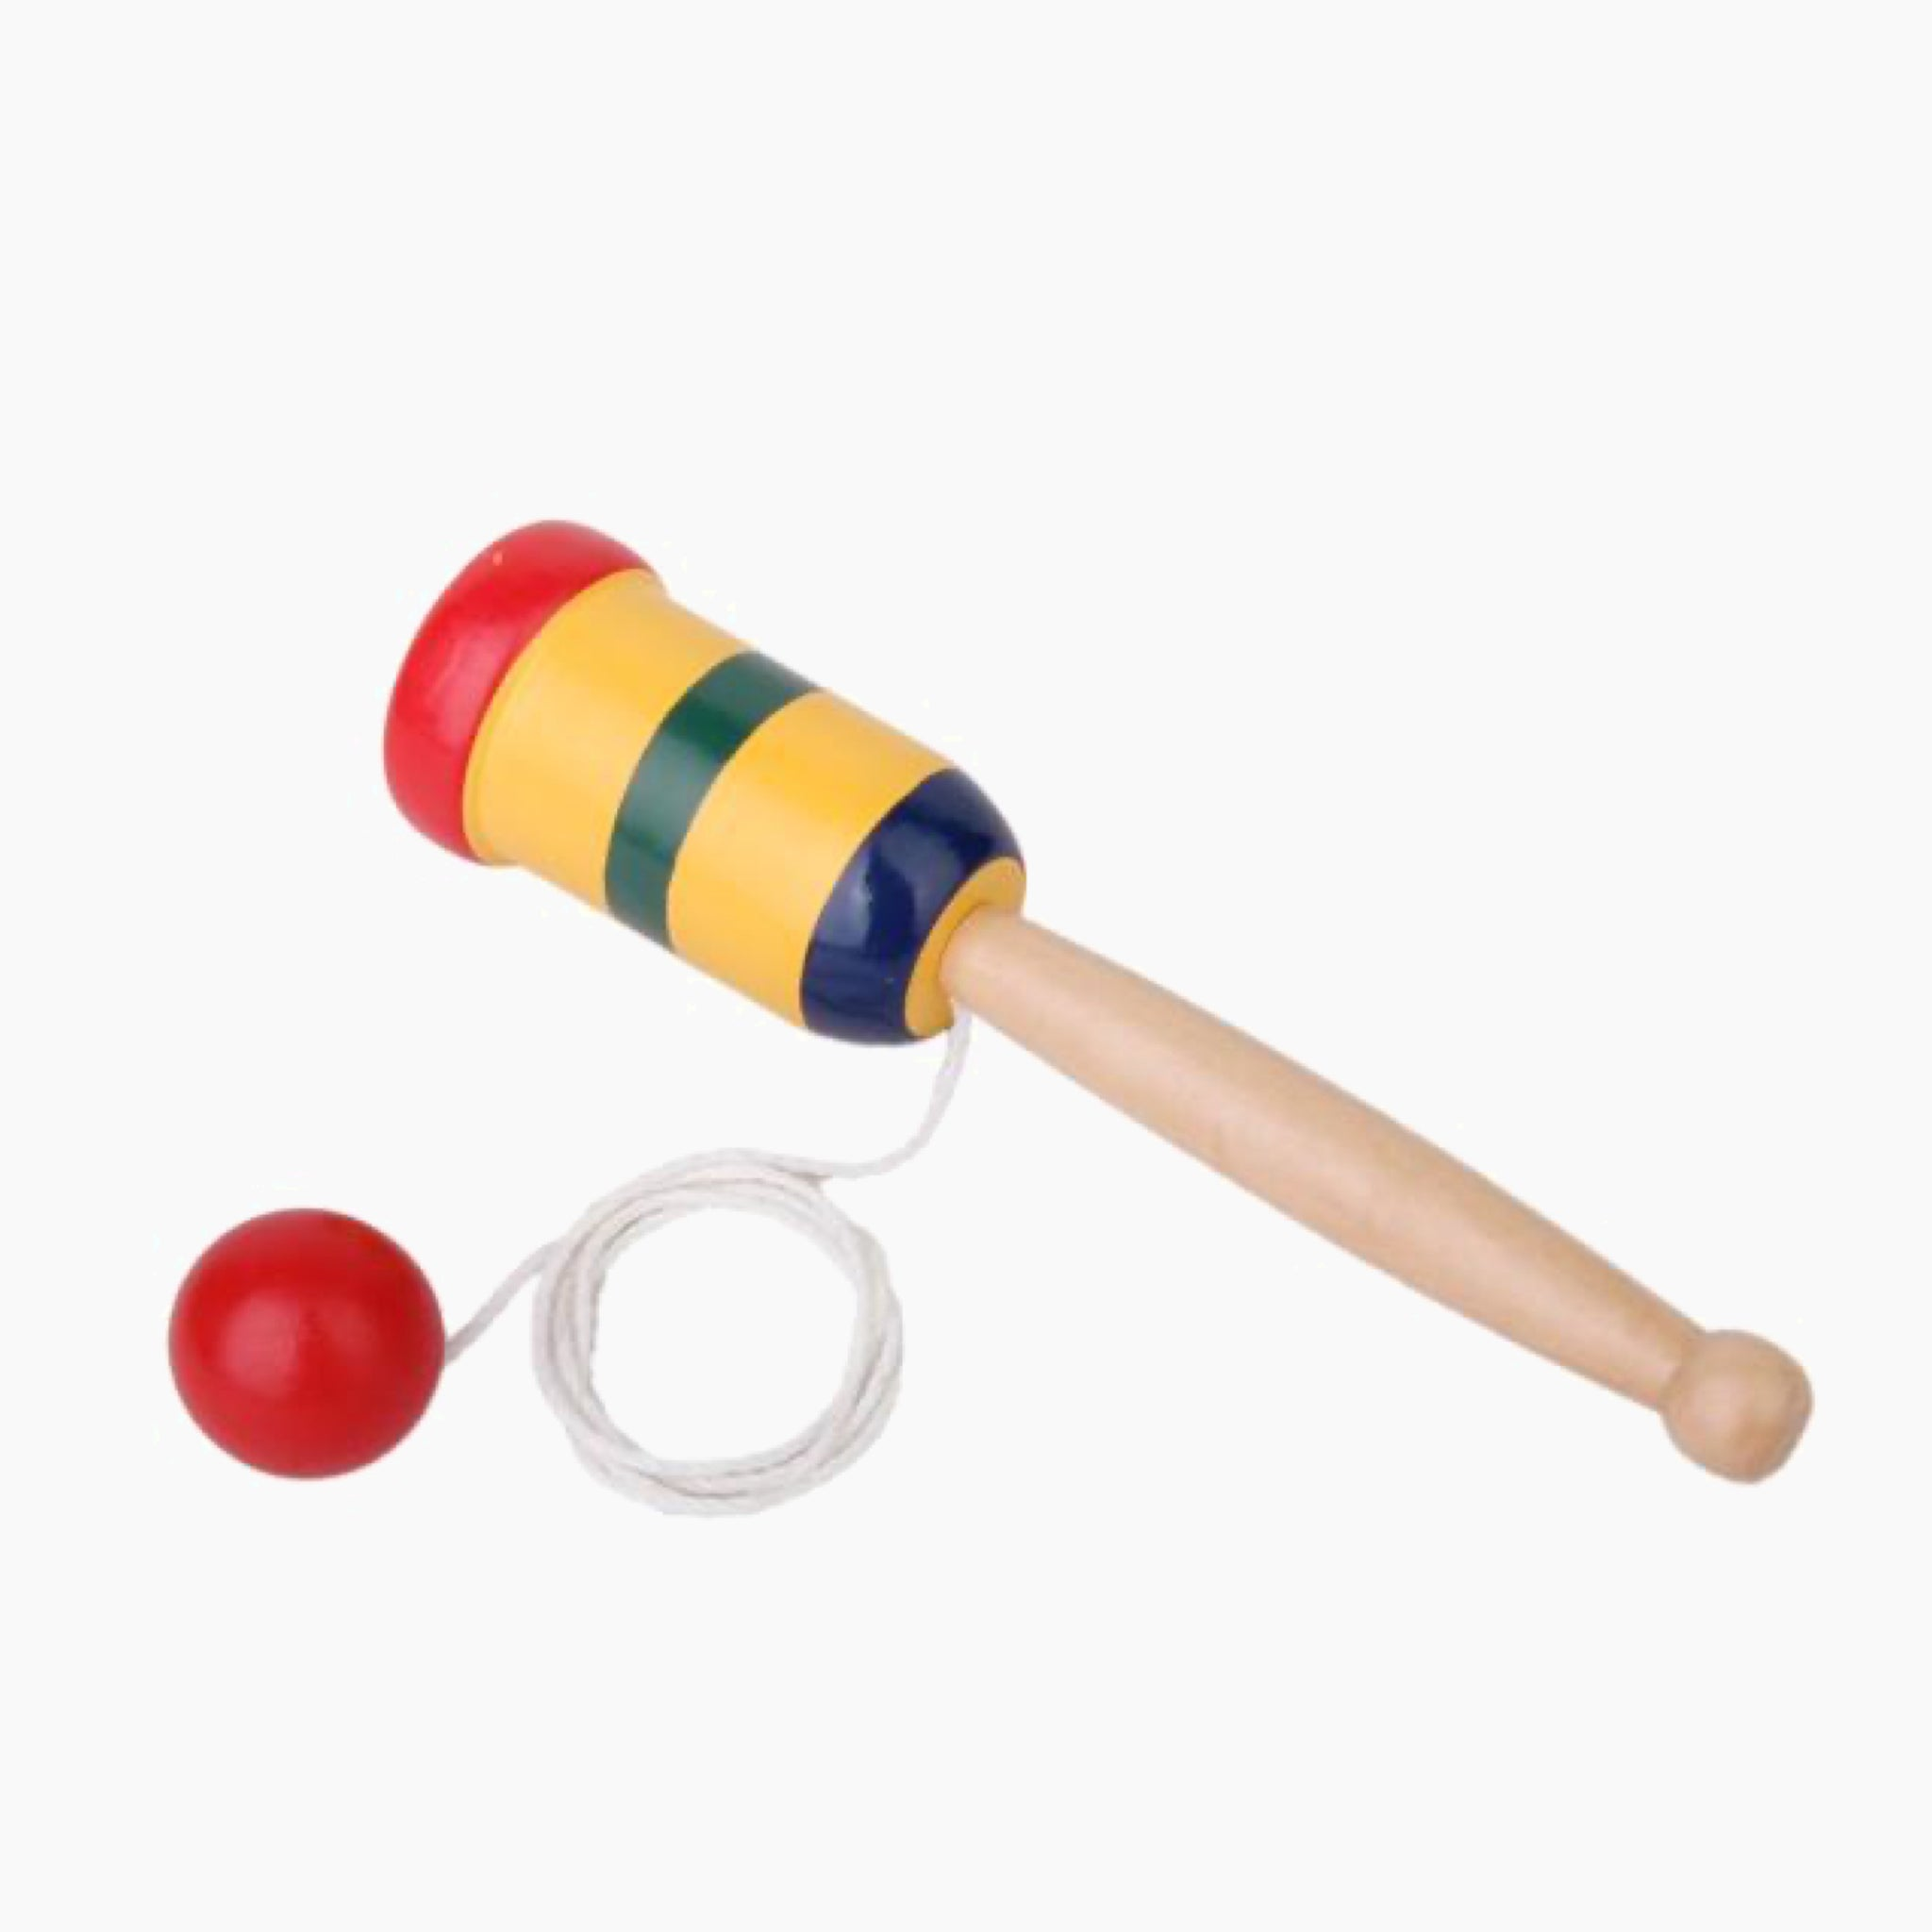 Japanese Wooden Kendama Cup and Ball Toy Japan Rainbow Toys